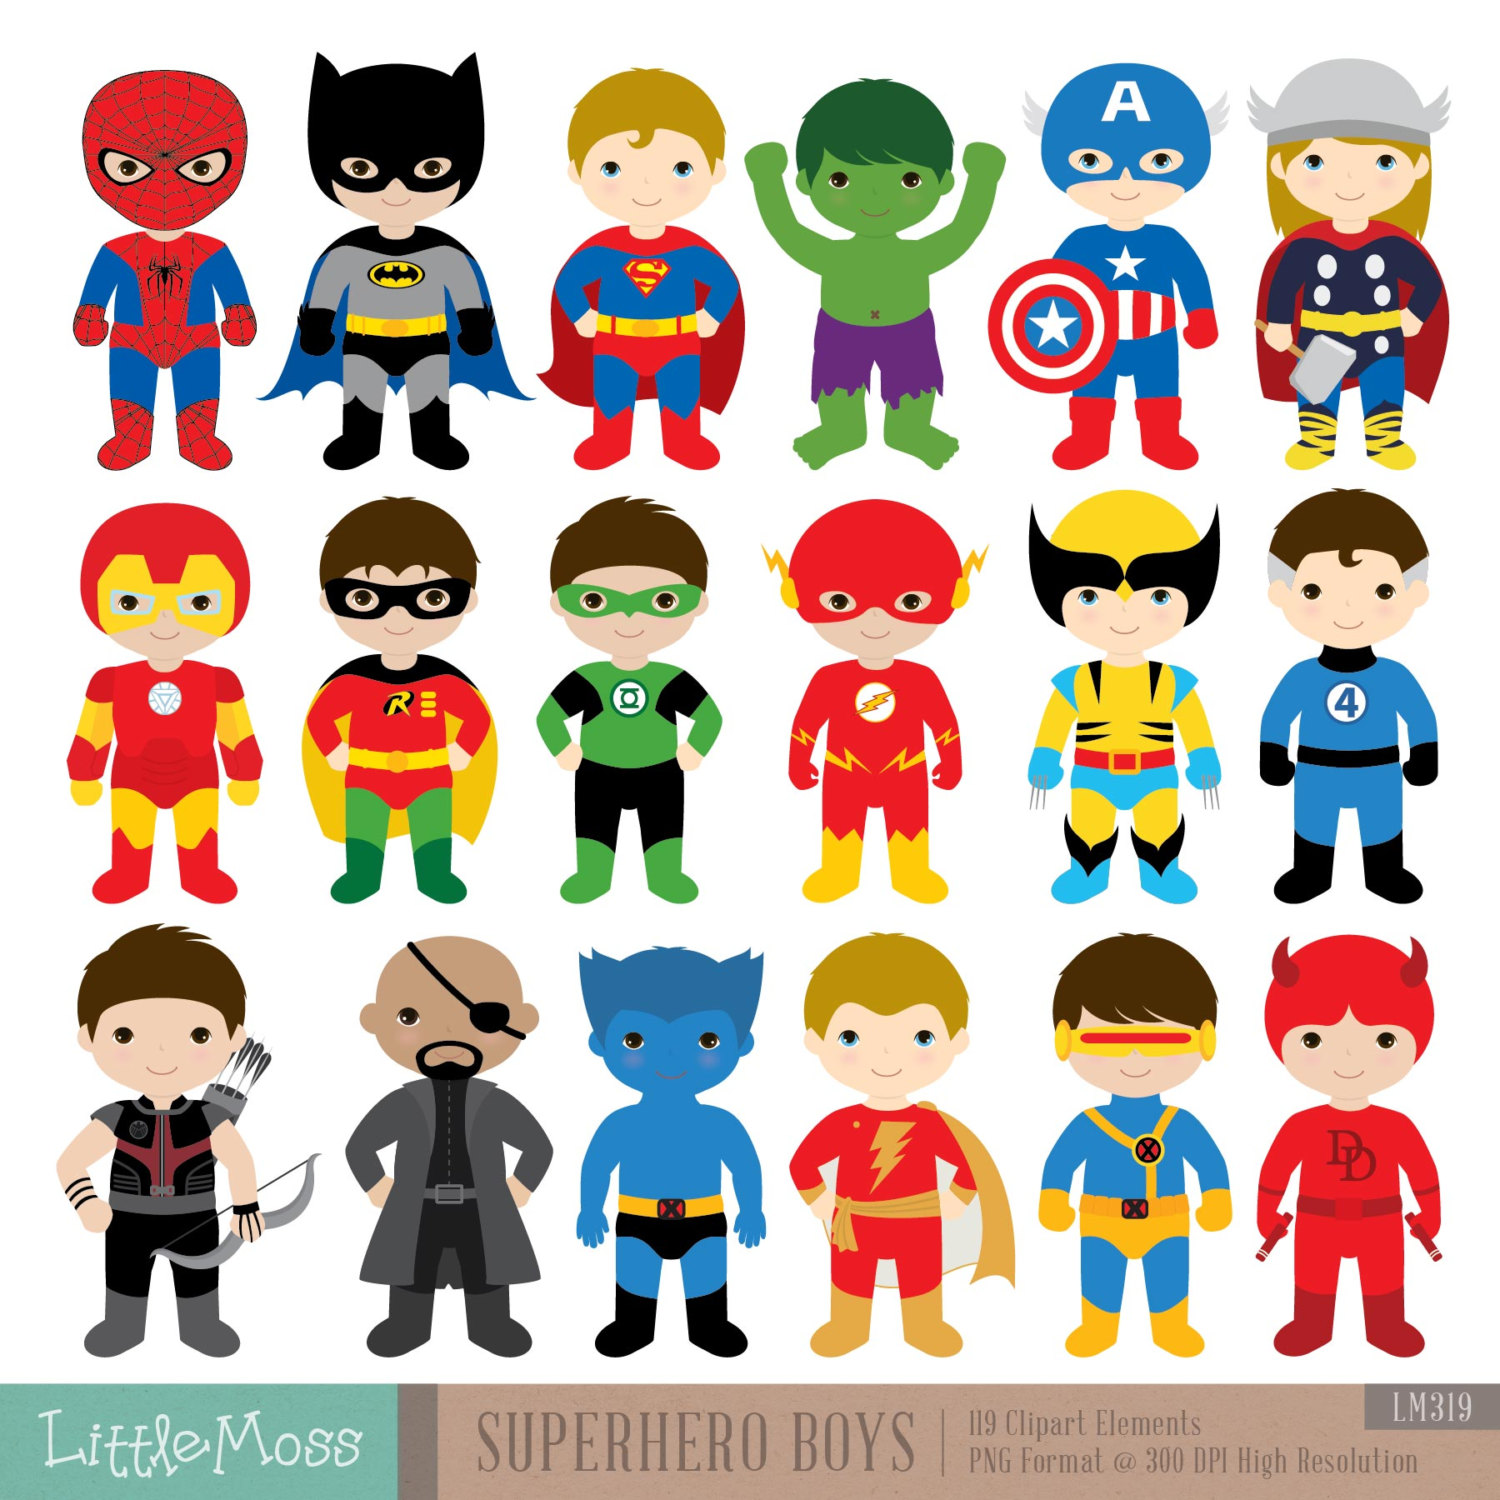 Cute superman characters clipart svg black and white download Superhero Kids Clipart & Superhero Kids Clip Art Images ... svg black and white download